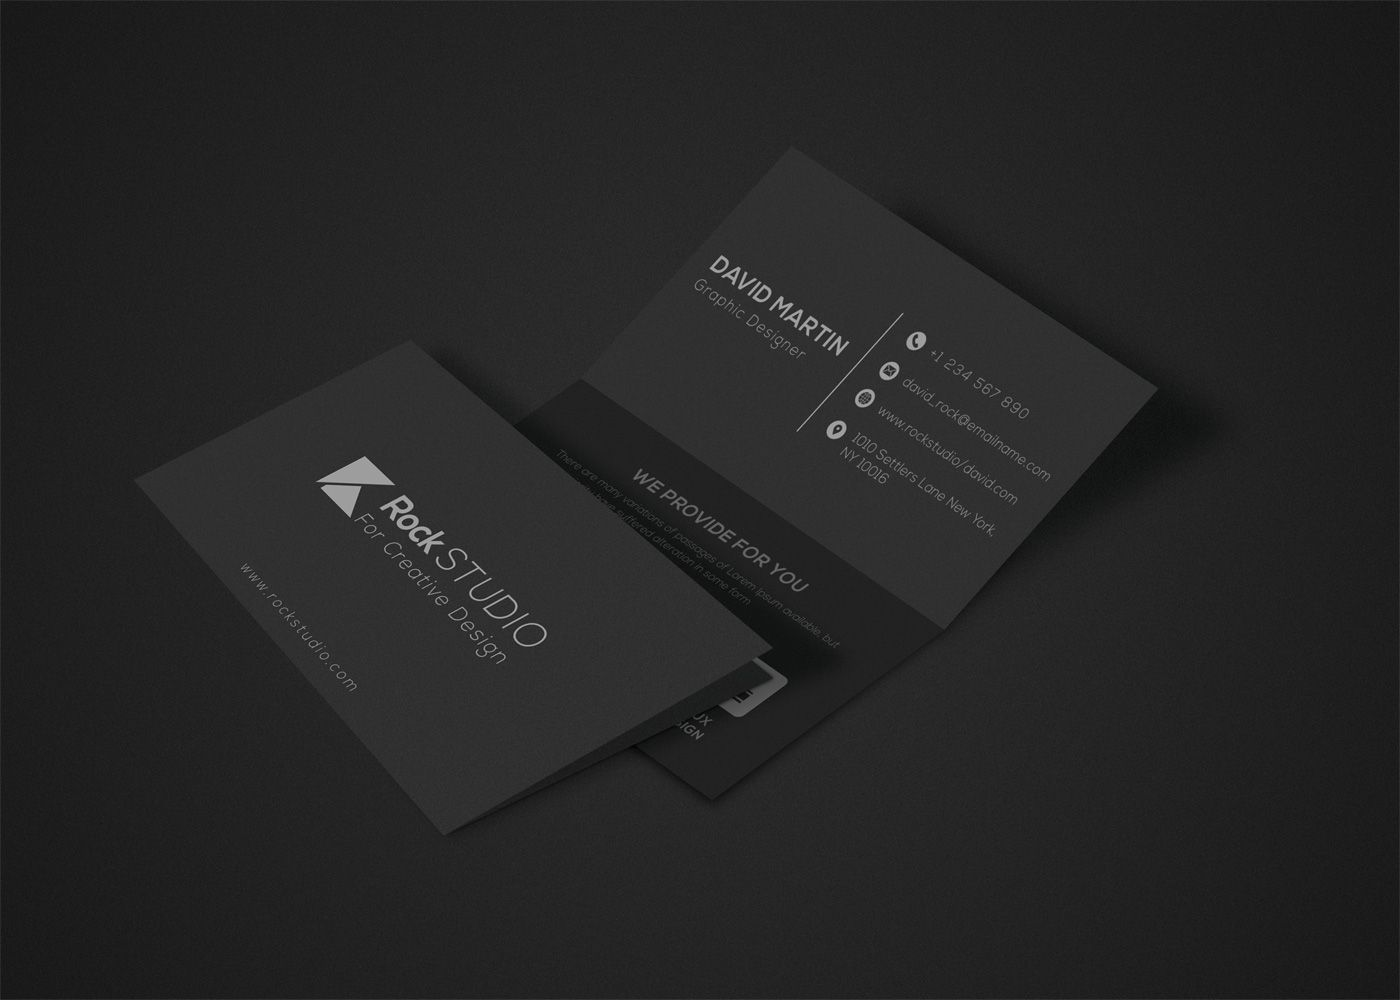 Luxury Folded Business Card Template Businesscard Unique Business Photoshop Design Creati Folded Business Cards Business Card Template Card Design